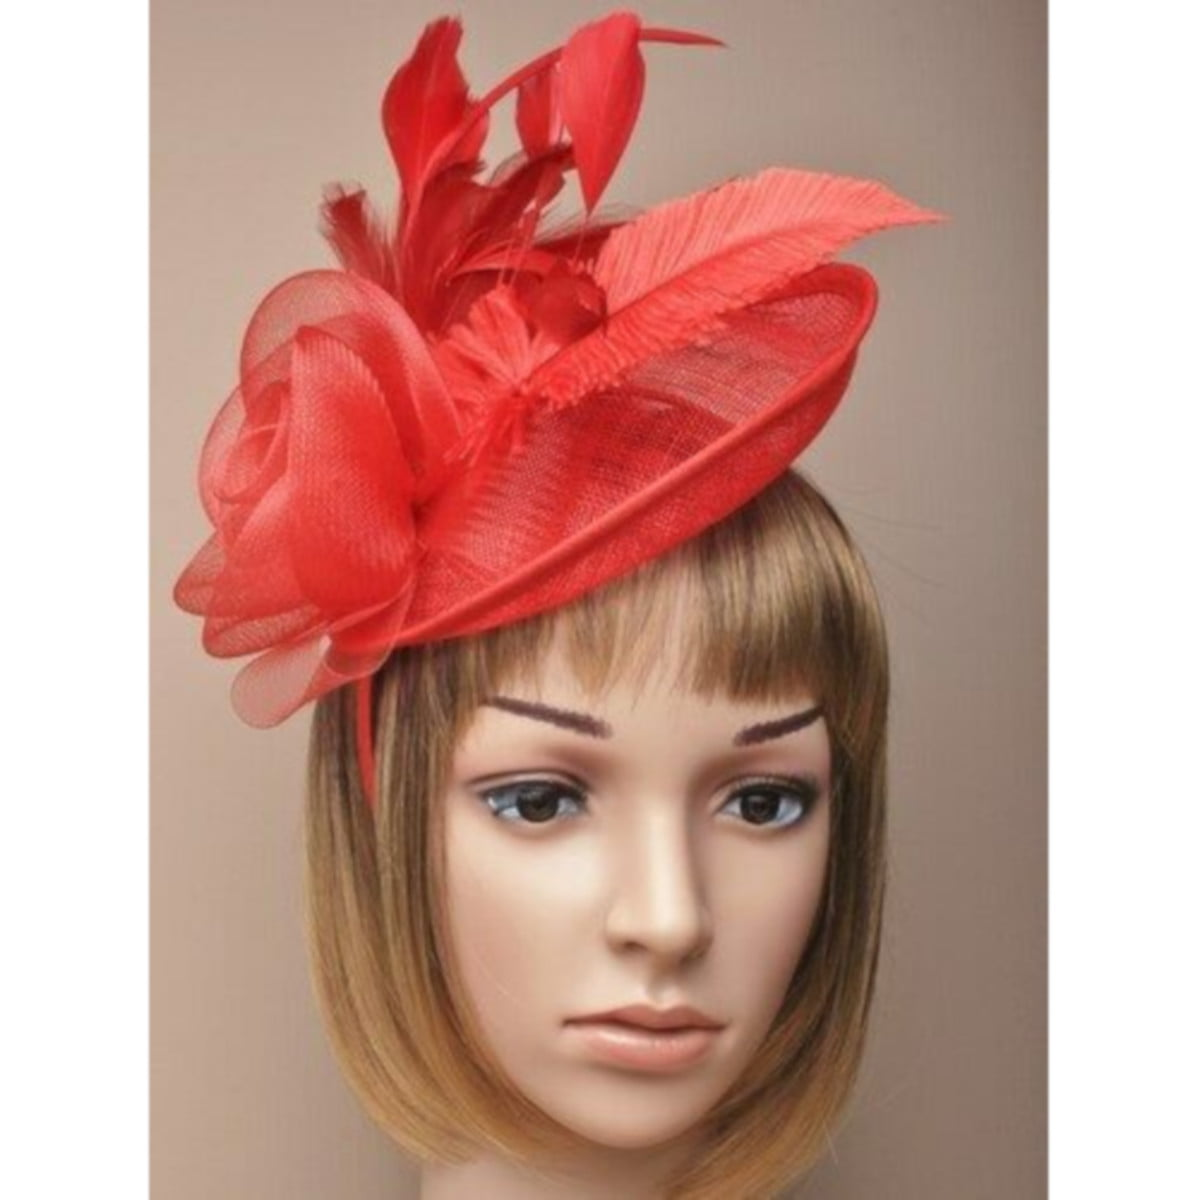 Ladies large red fascinator with feathers and net flower on an alice band. 1